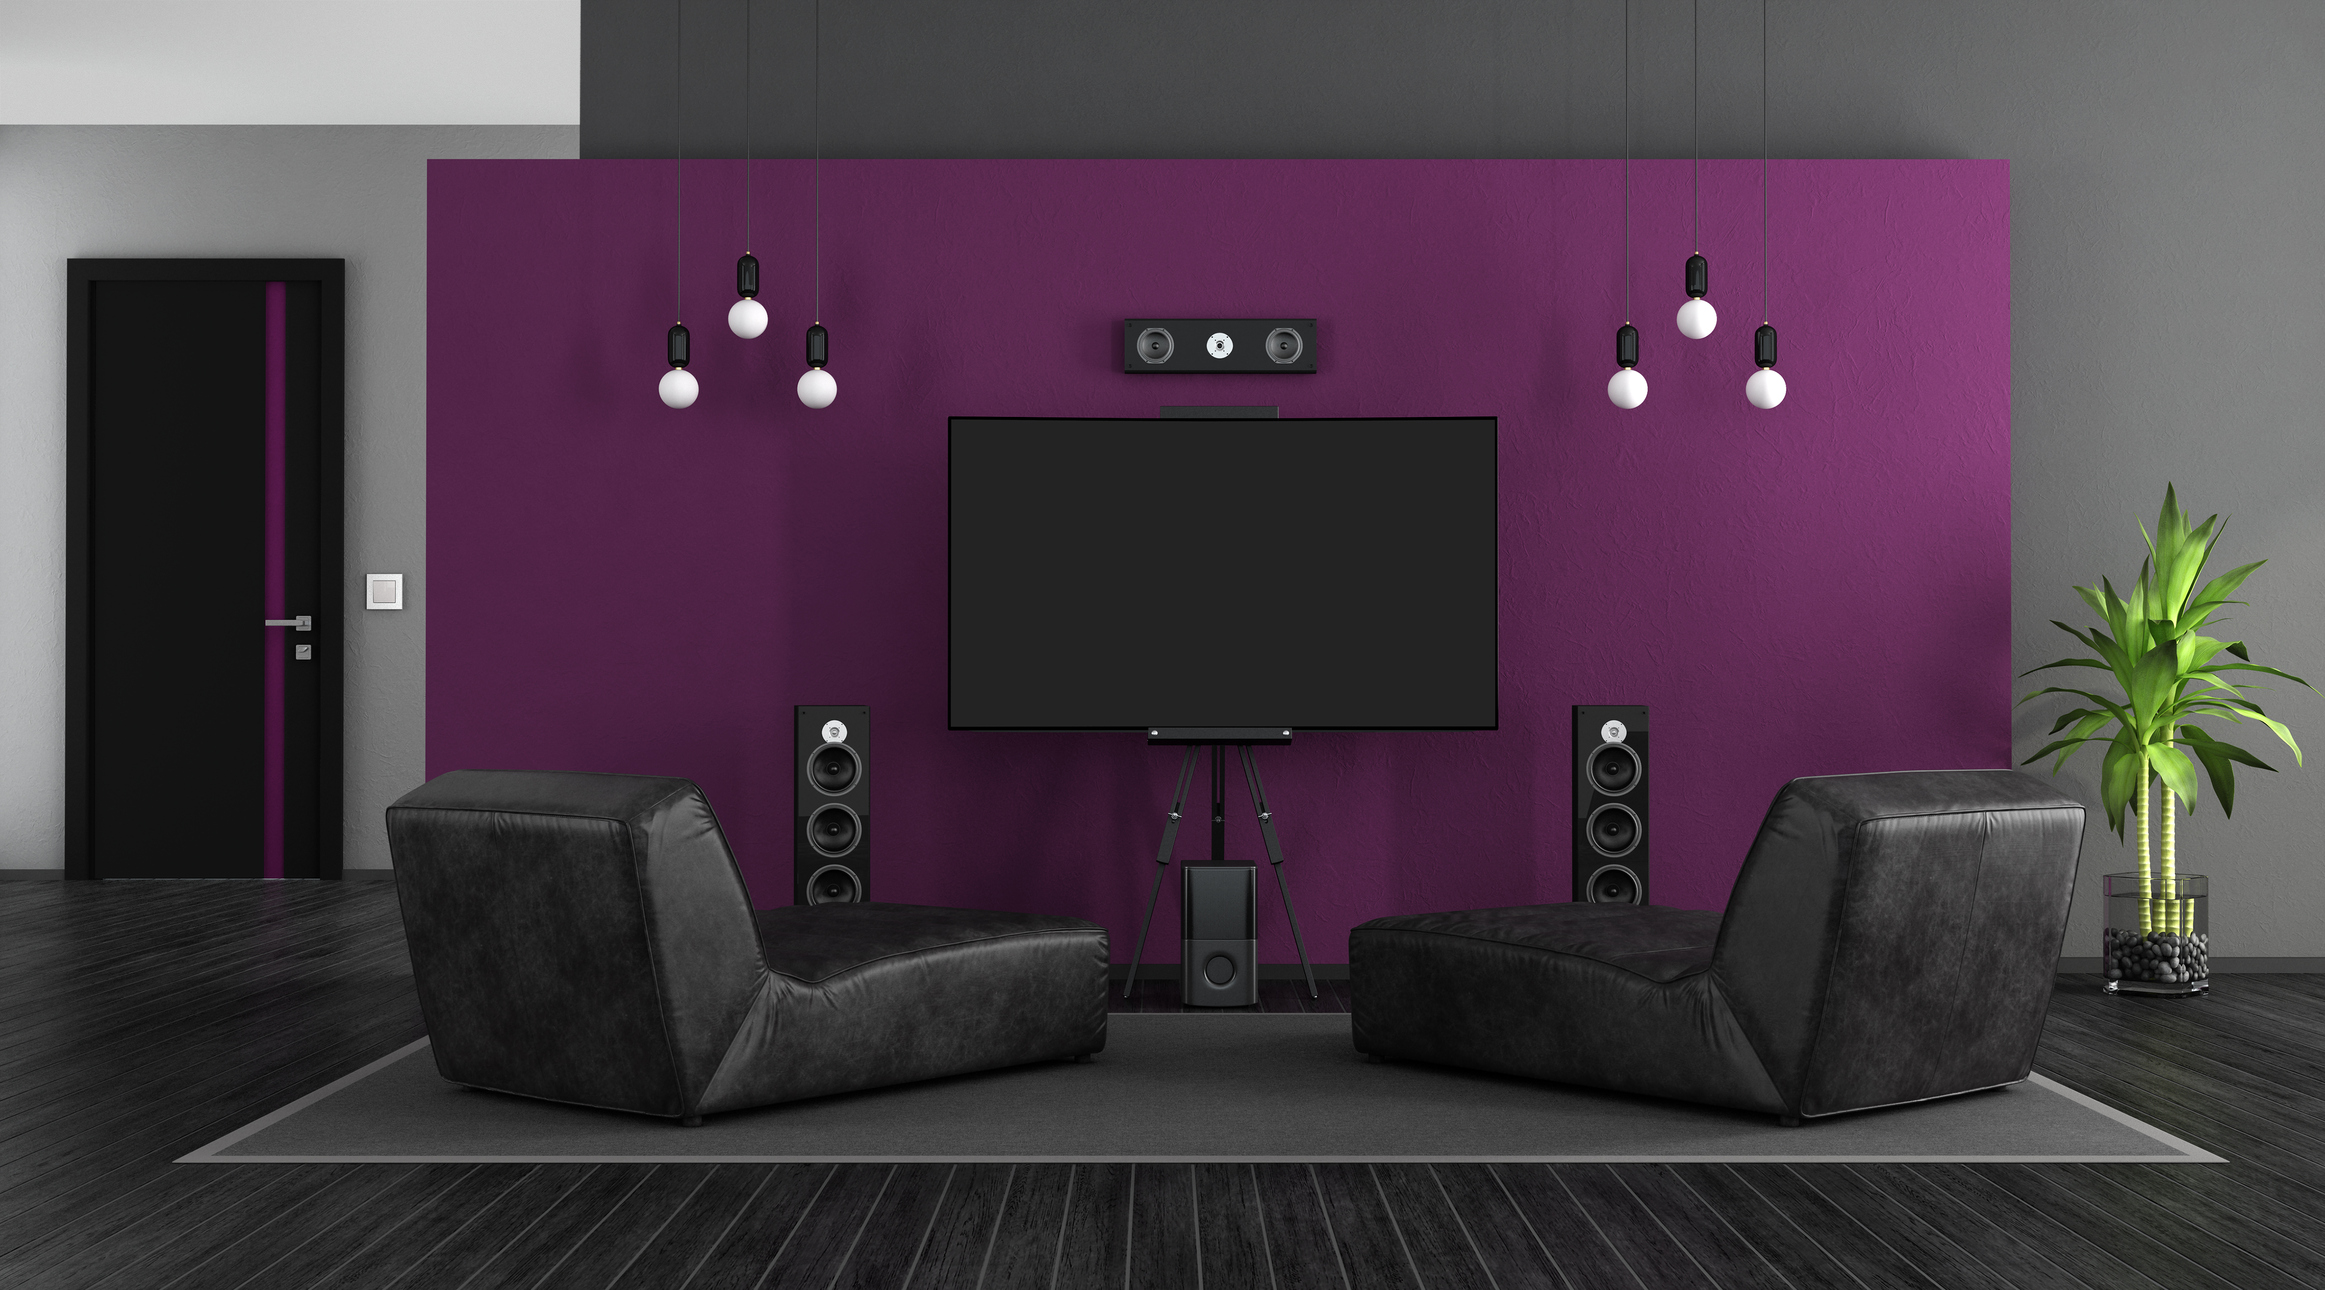 Black and purple with chaise lounges and home cinema system